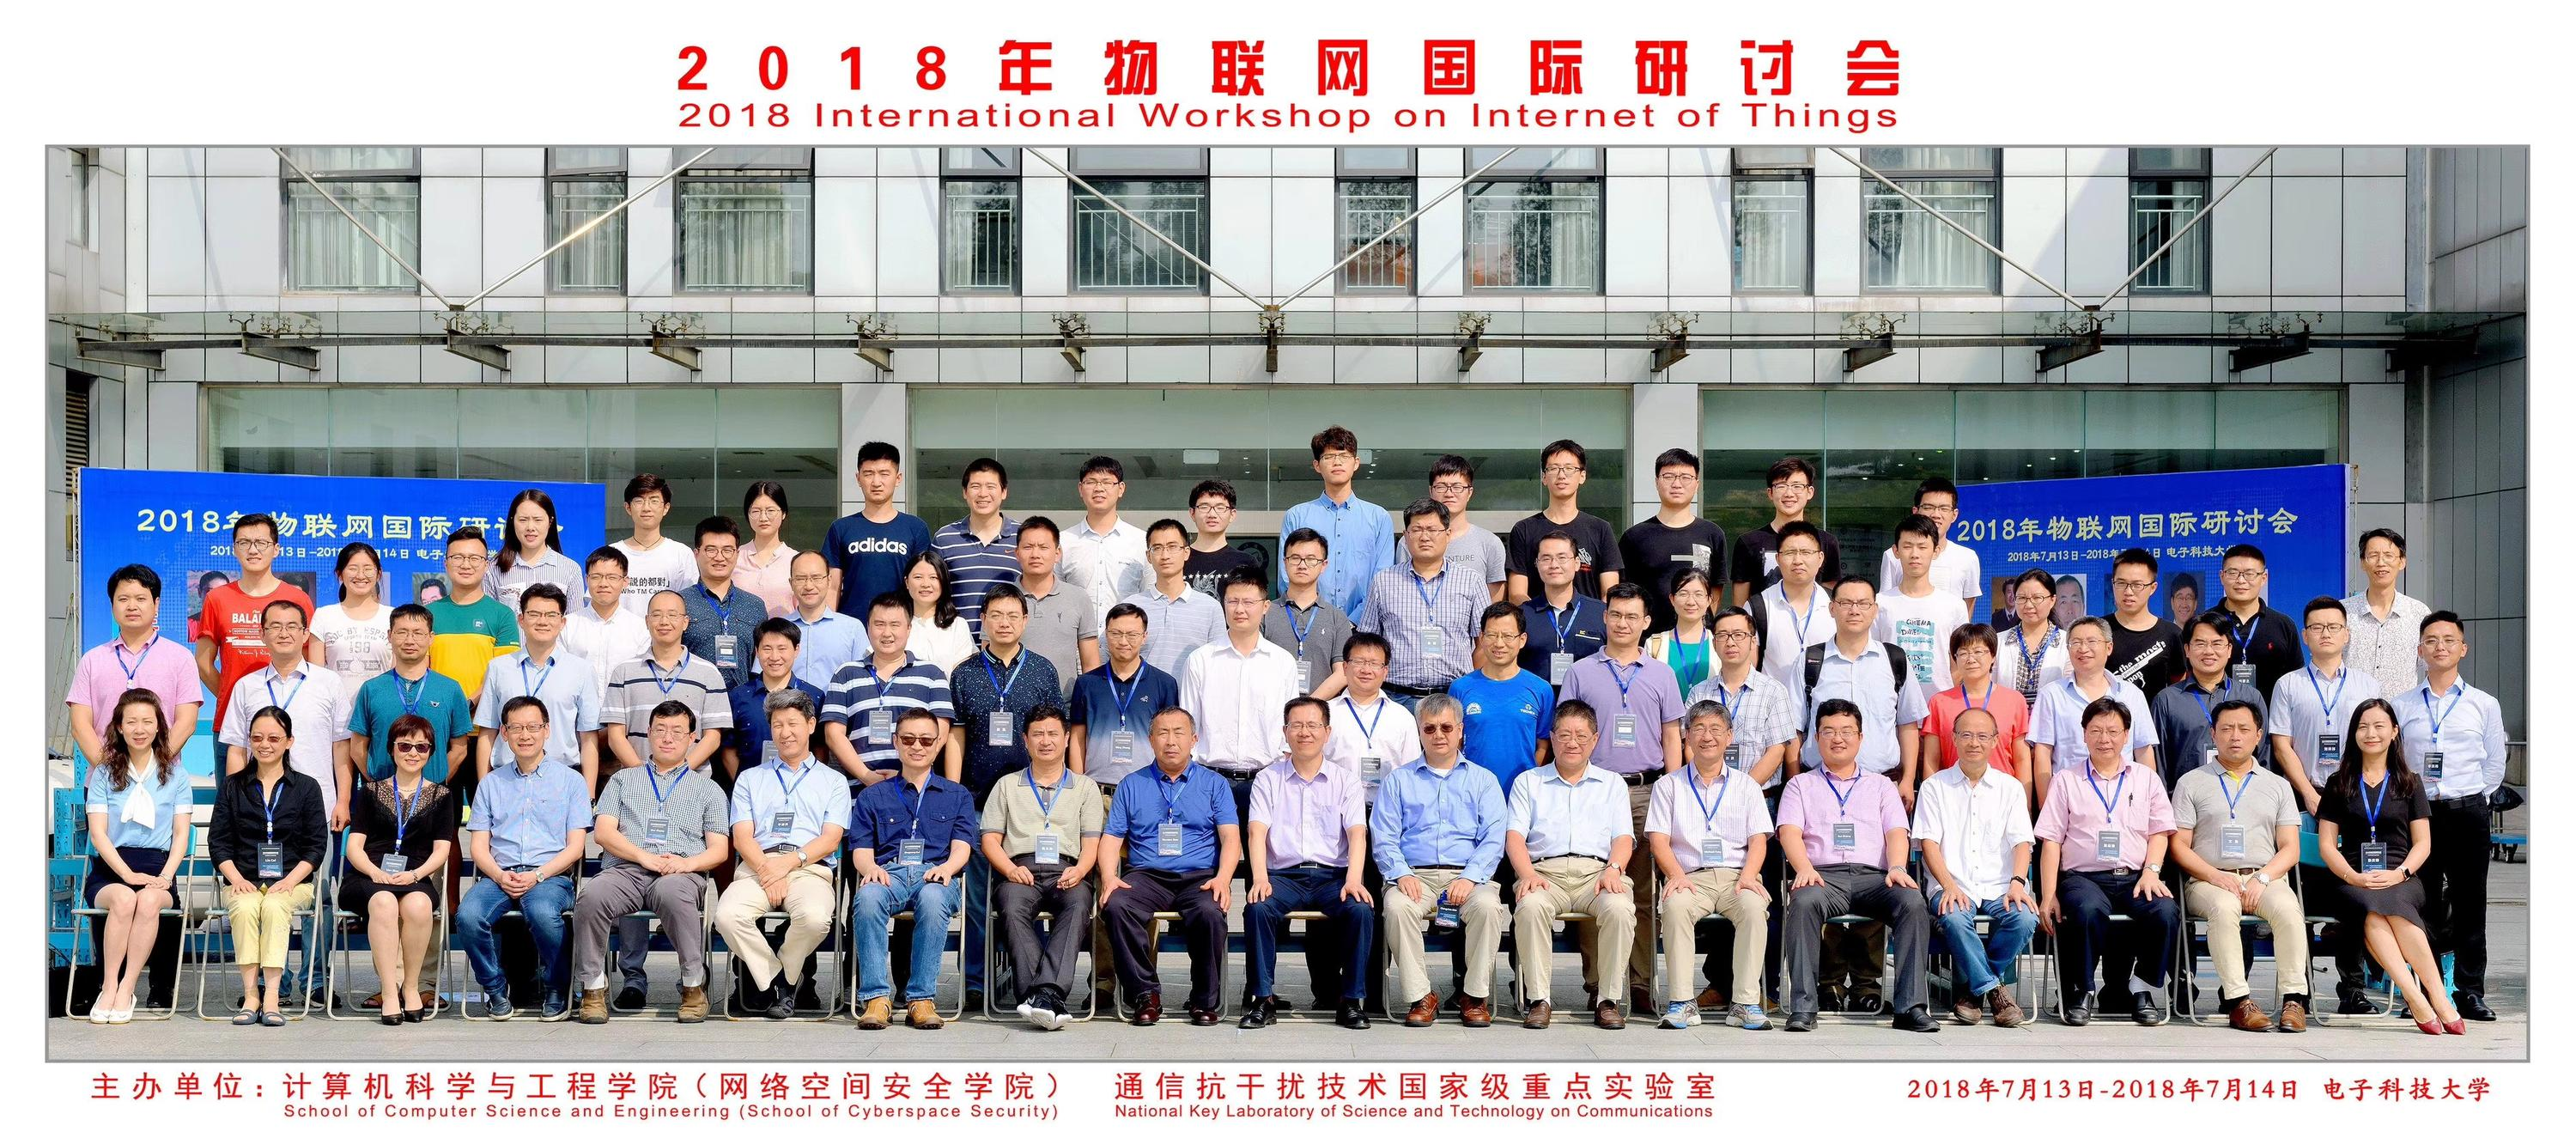 Prof. Shen and many BBCR members attended 2018 International Workshop on Internet of Things